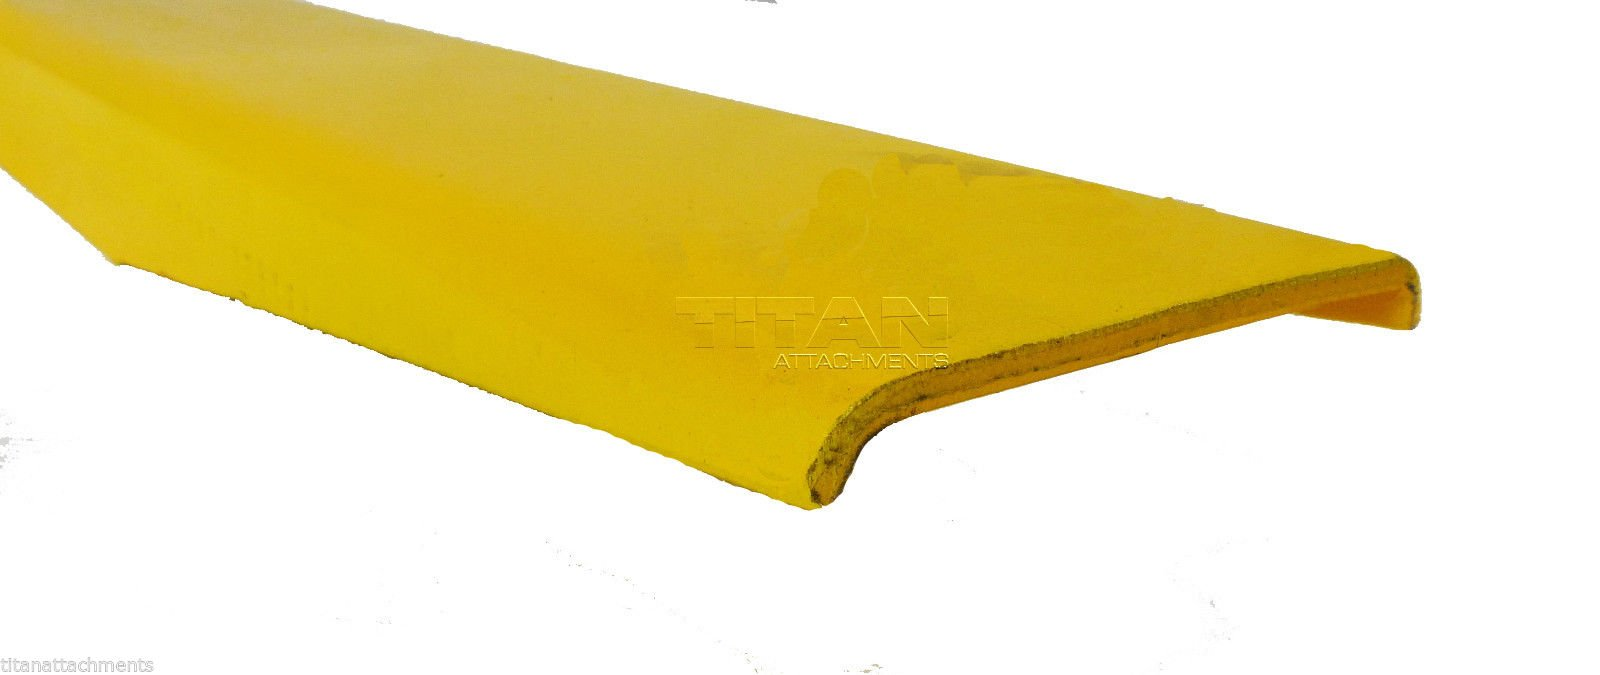 84'' Titan Pallet Fork Extensions for forklifts lift truck slide on steel FX84 by Titan Attachments (Image #6)